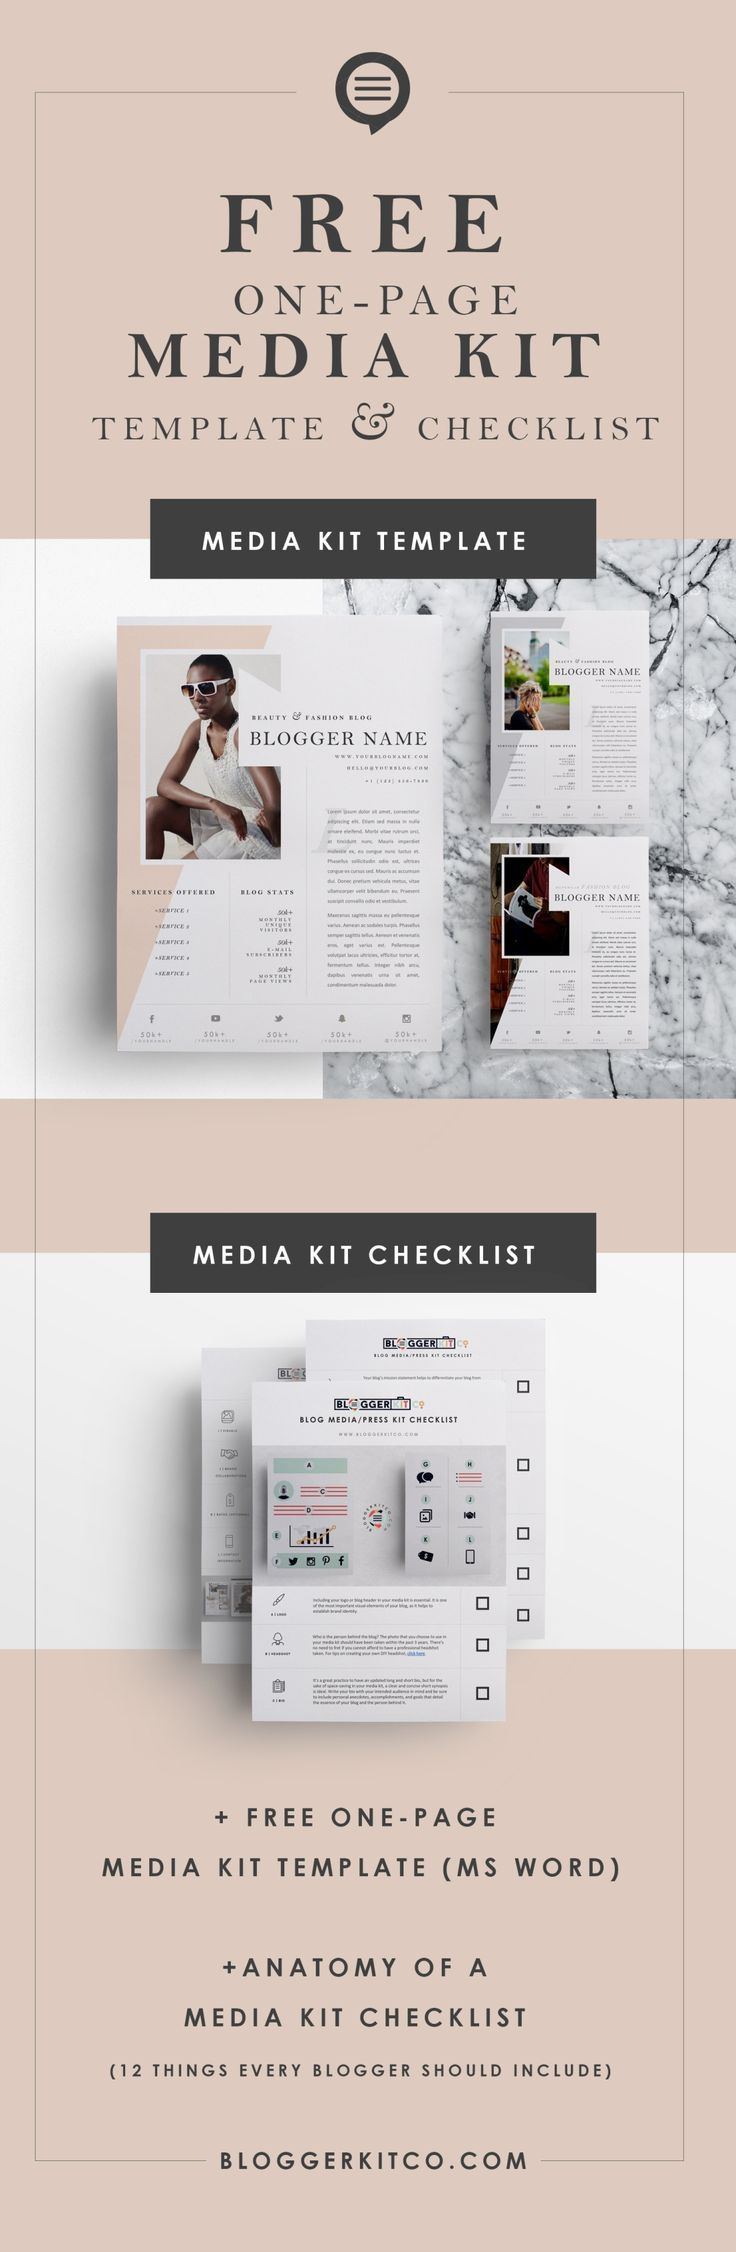 Need a Media Kit? Here\'s a Free Media Kit Template + Checklist for ...